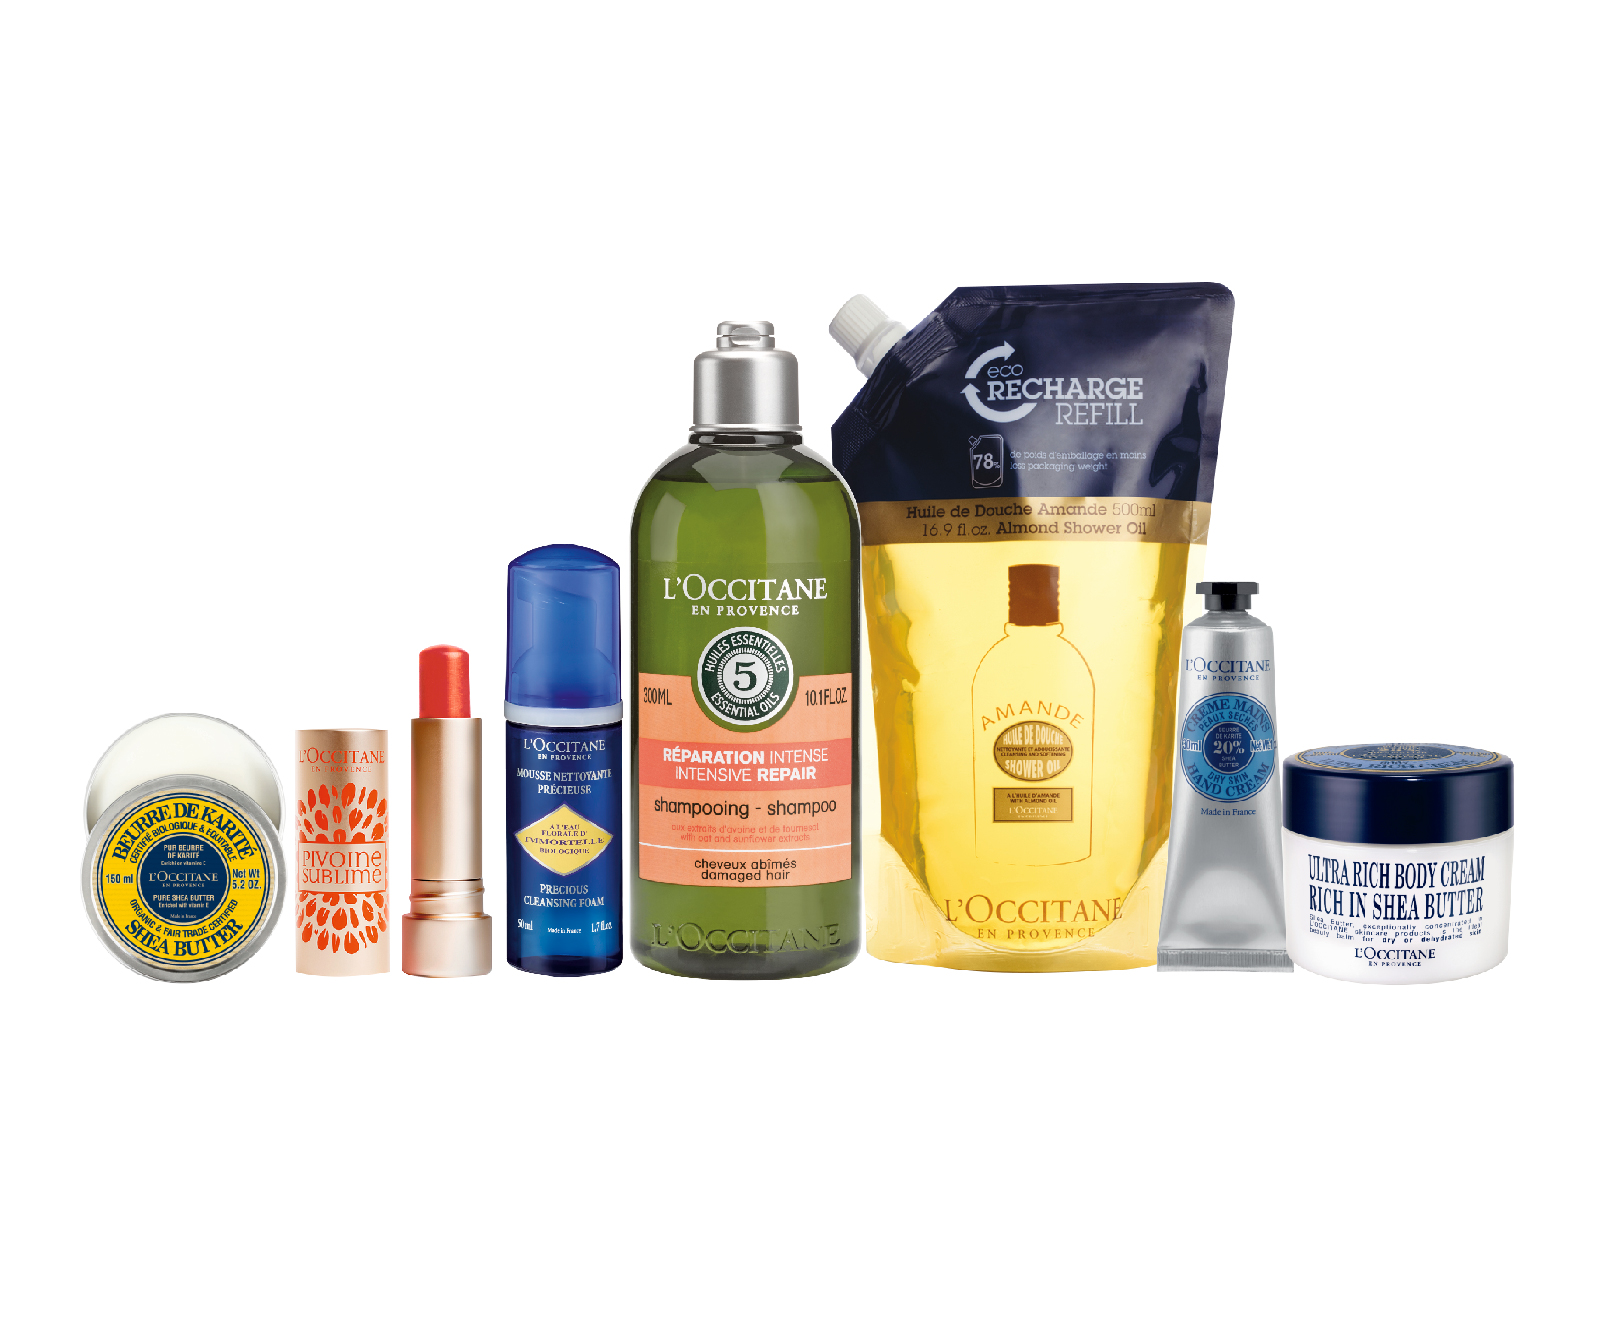 Thumbnail for The L'Occitane® Recycling Programme